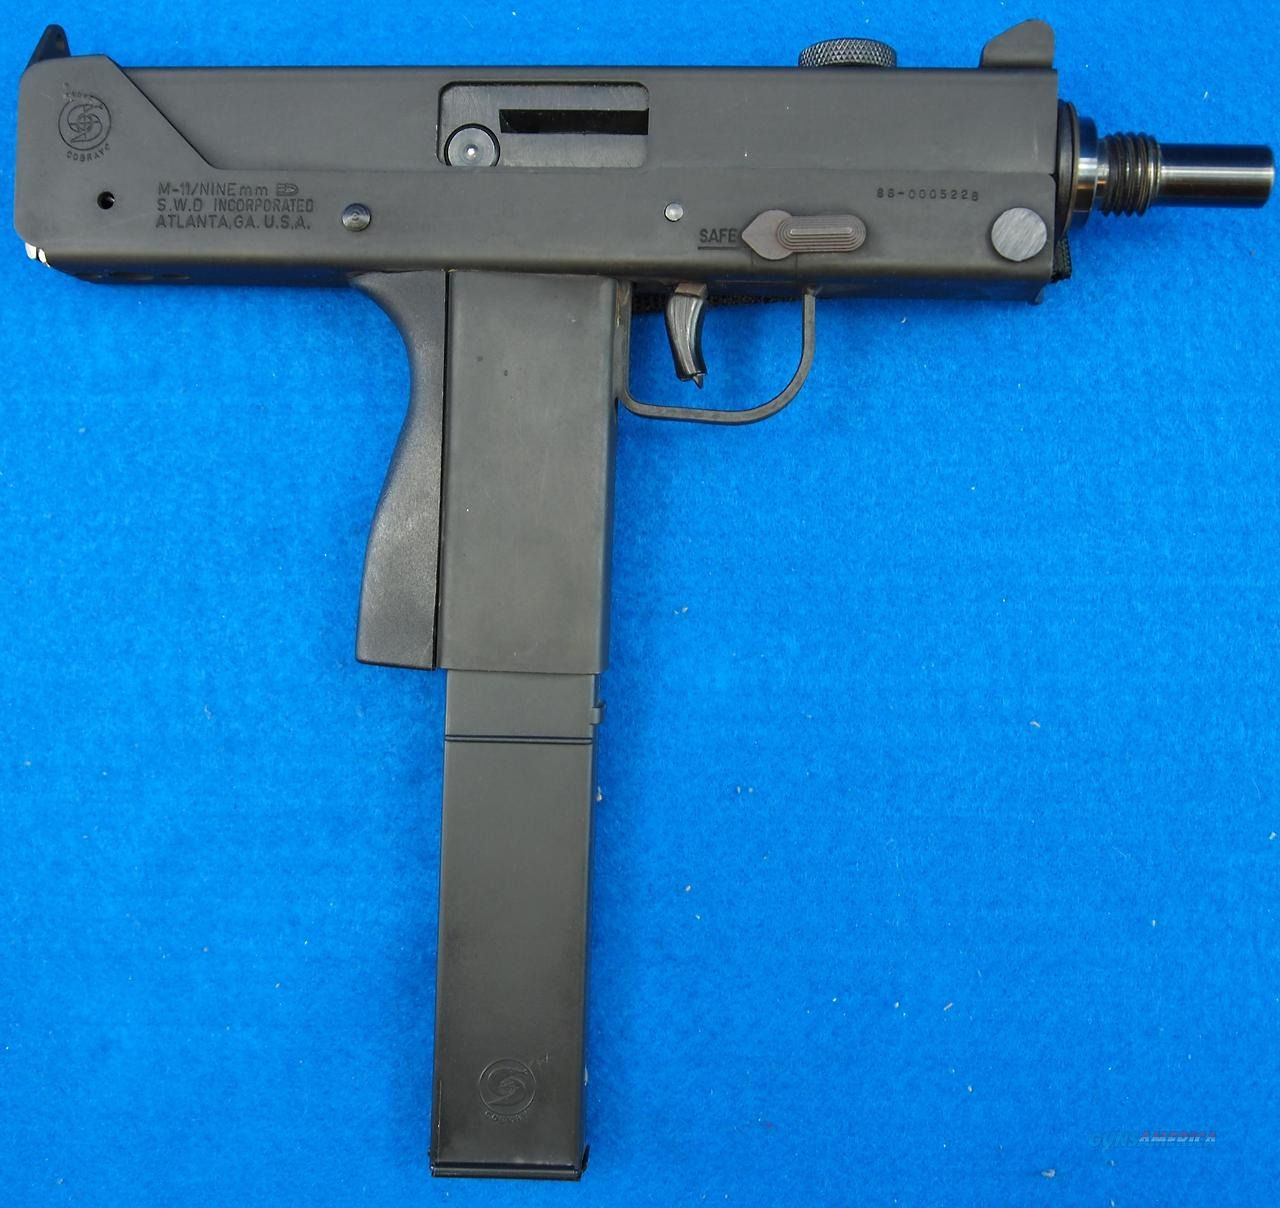 Cobray M11 9×19mm Submachine Gun, An Extremely Simplified